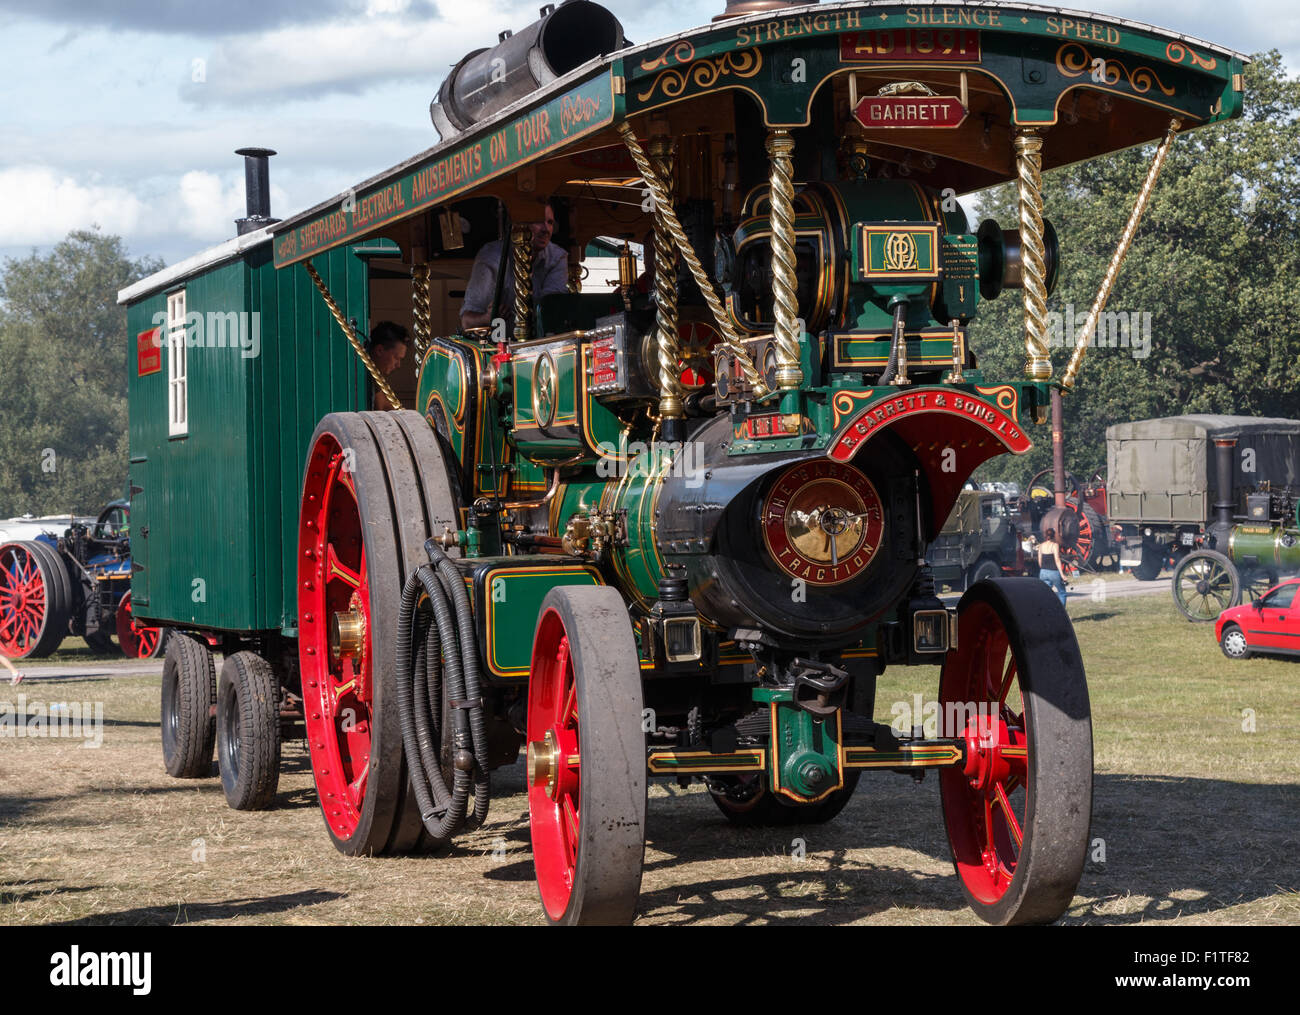 Steam Traction Engine with trailer - Stock Image